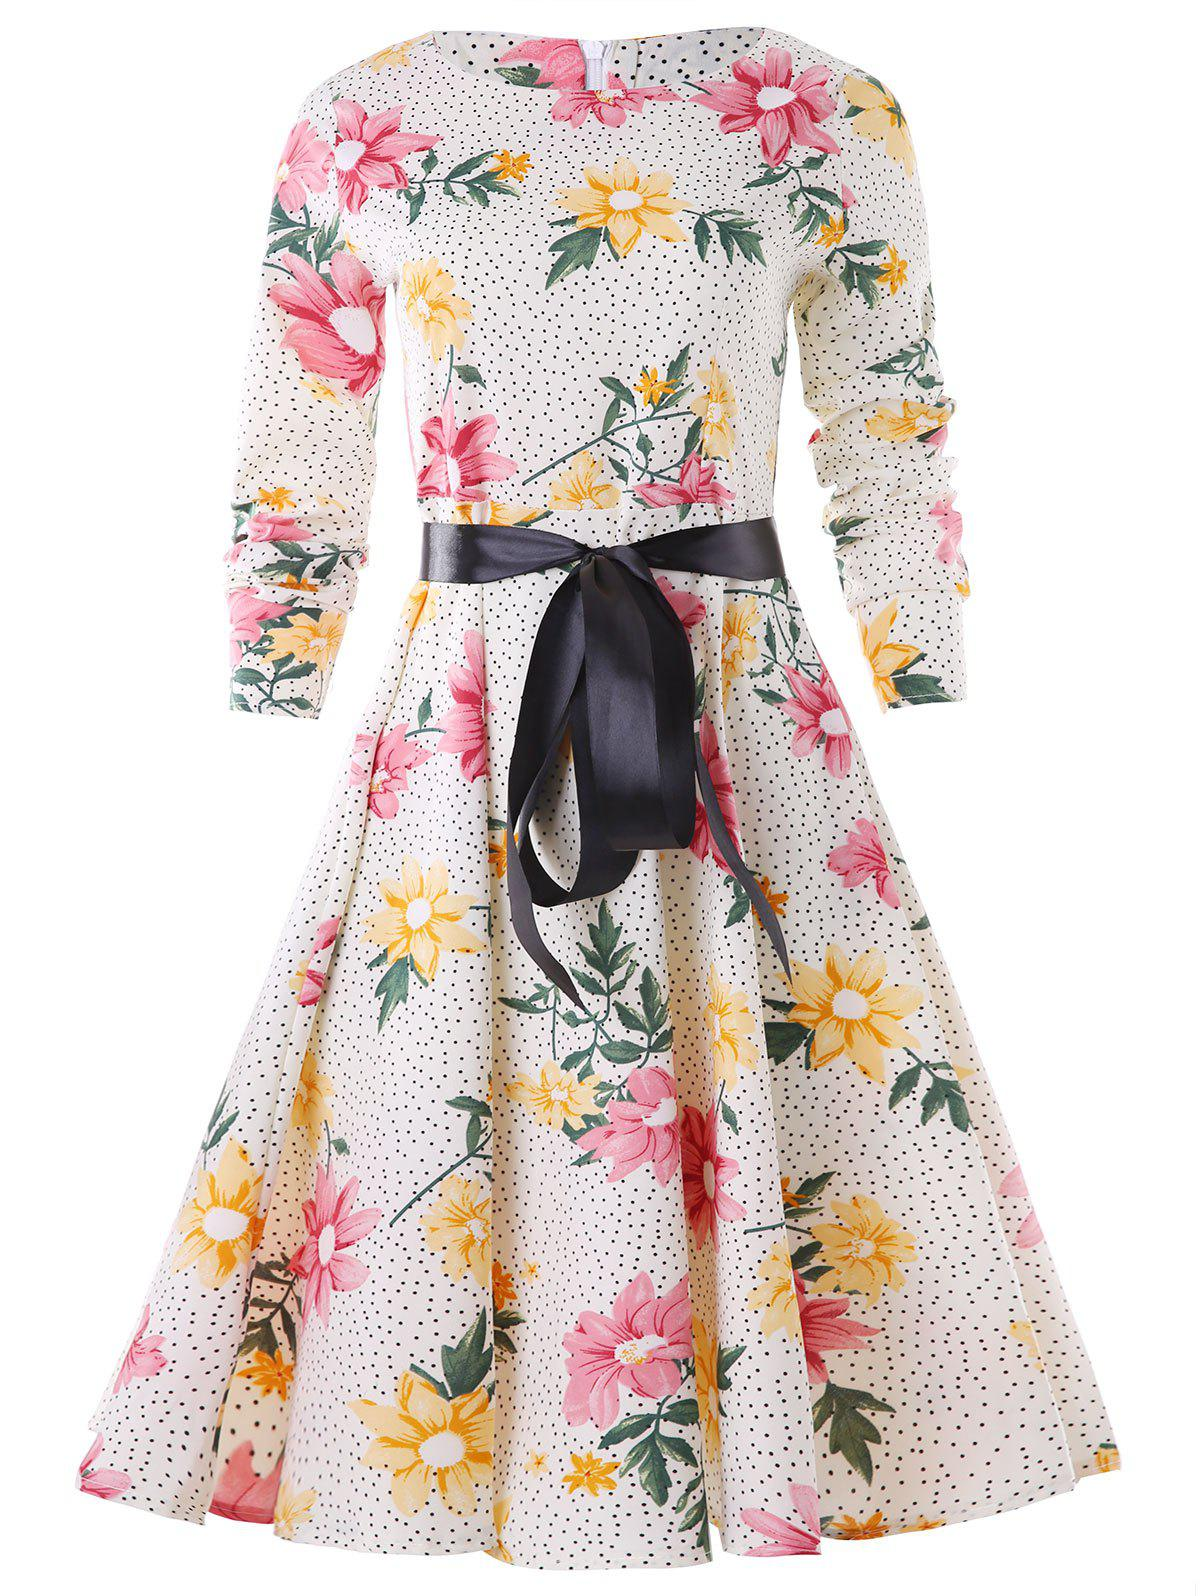 Discount Polka Dot Bowknot Belted A Line Dress